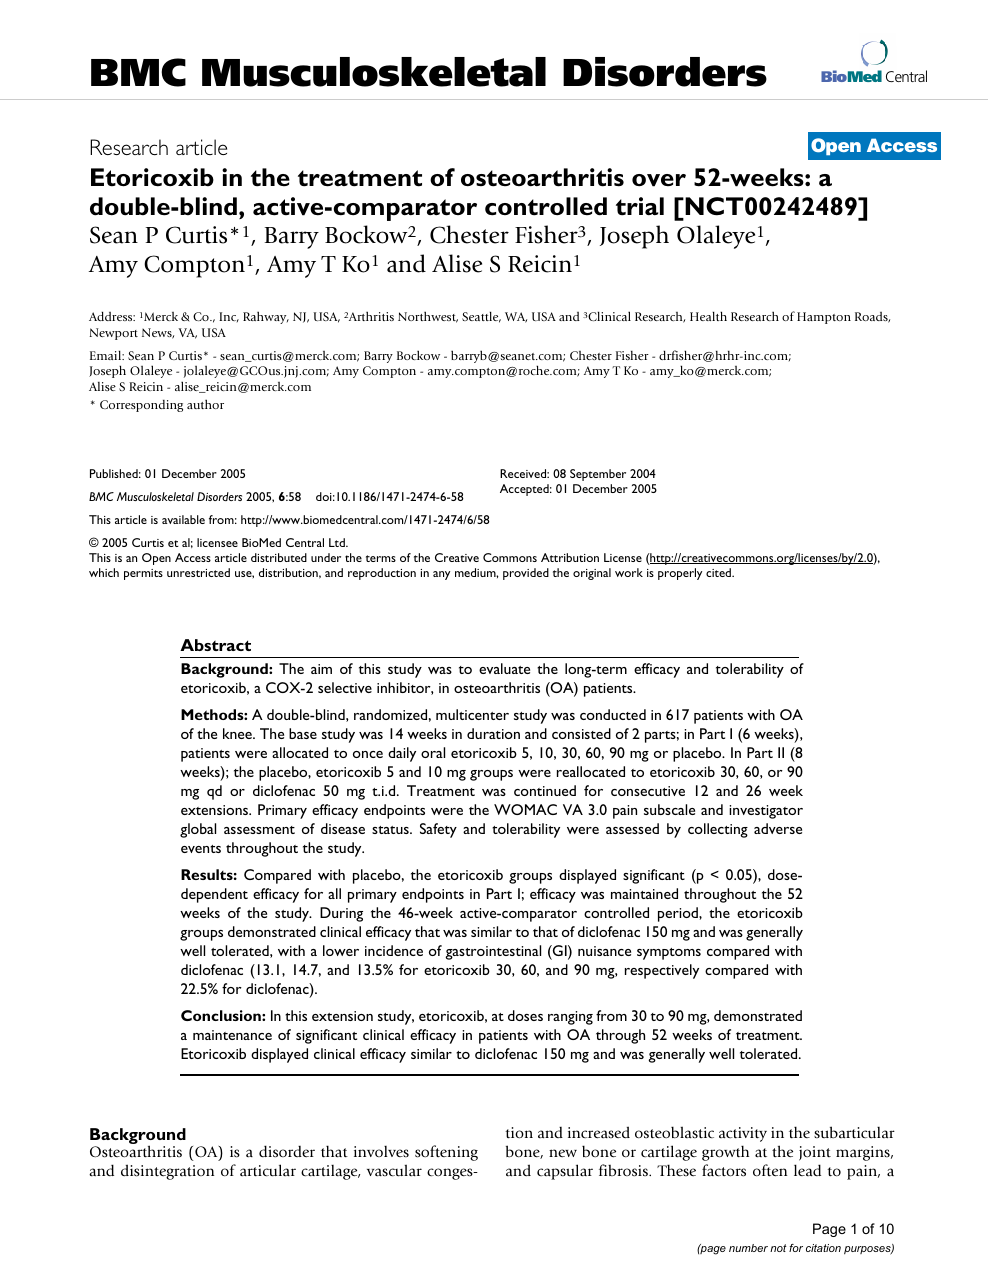 Etoricoxib in the treatment of osteoarthritis over 52.